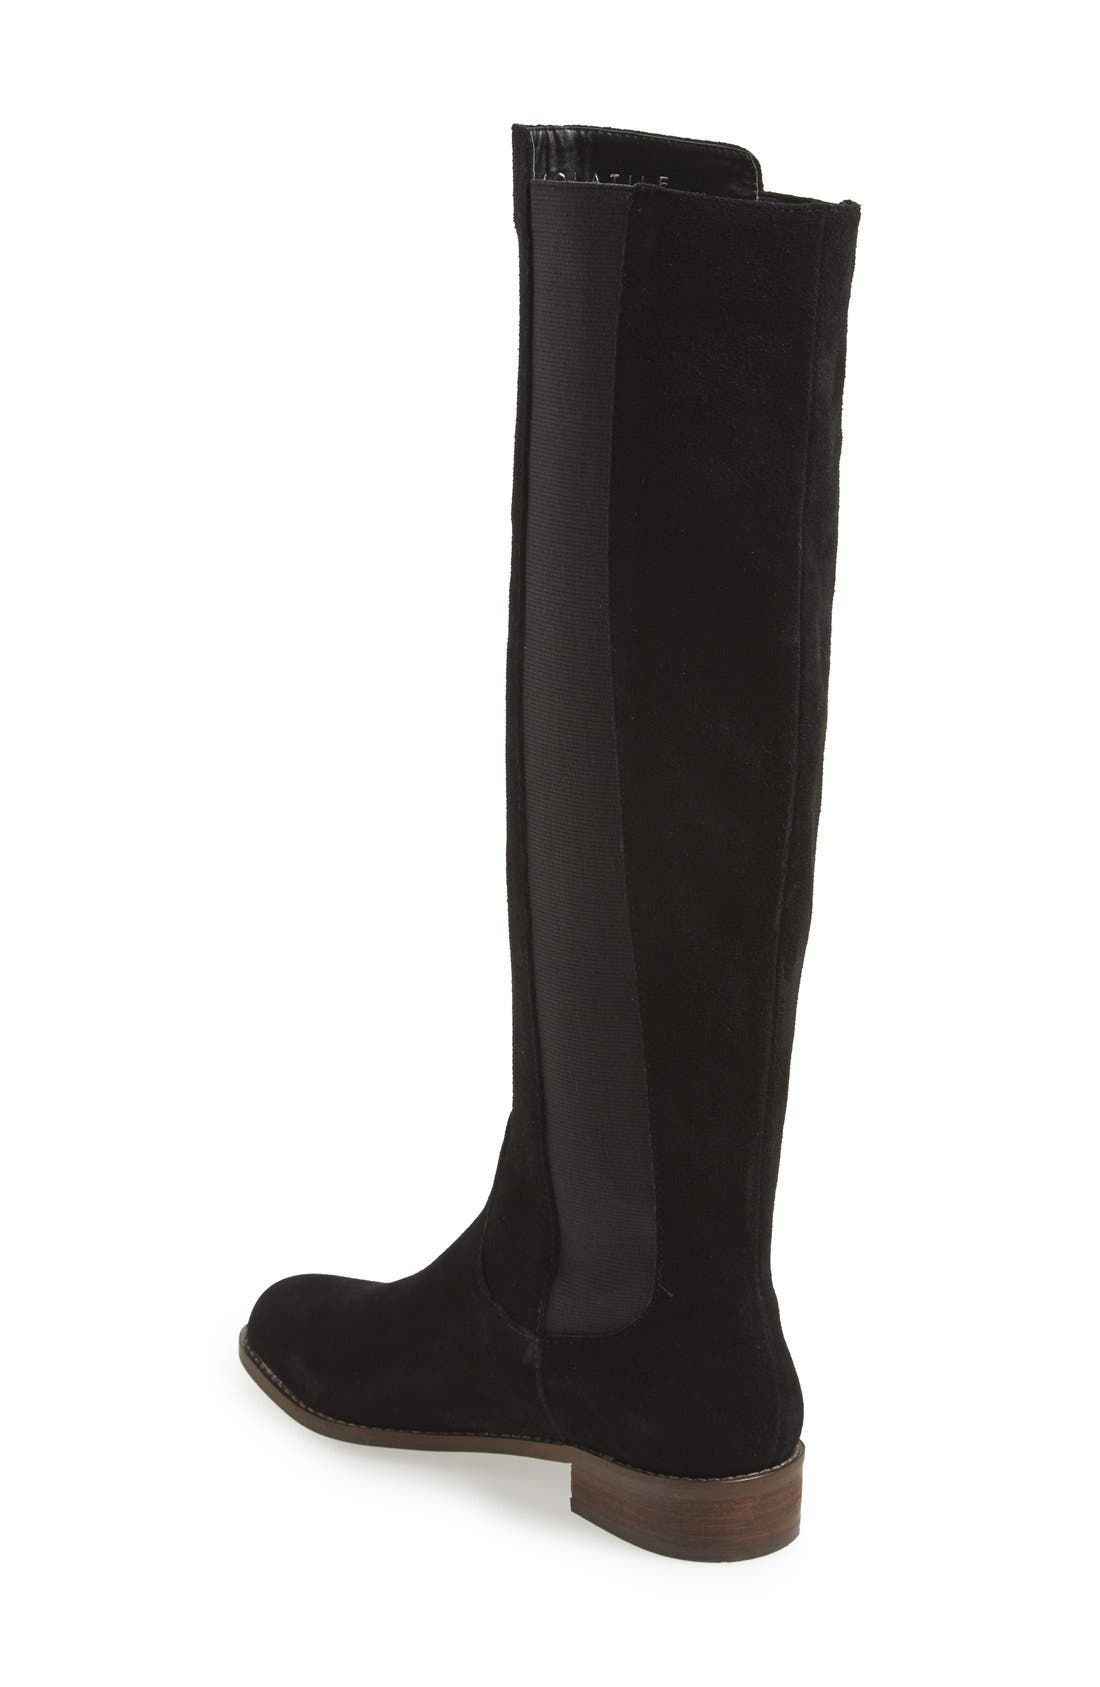 'Timber' Suede Knee High Boot,                             Alternate thumbnail 4, color,                             001